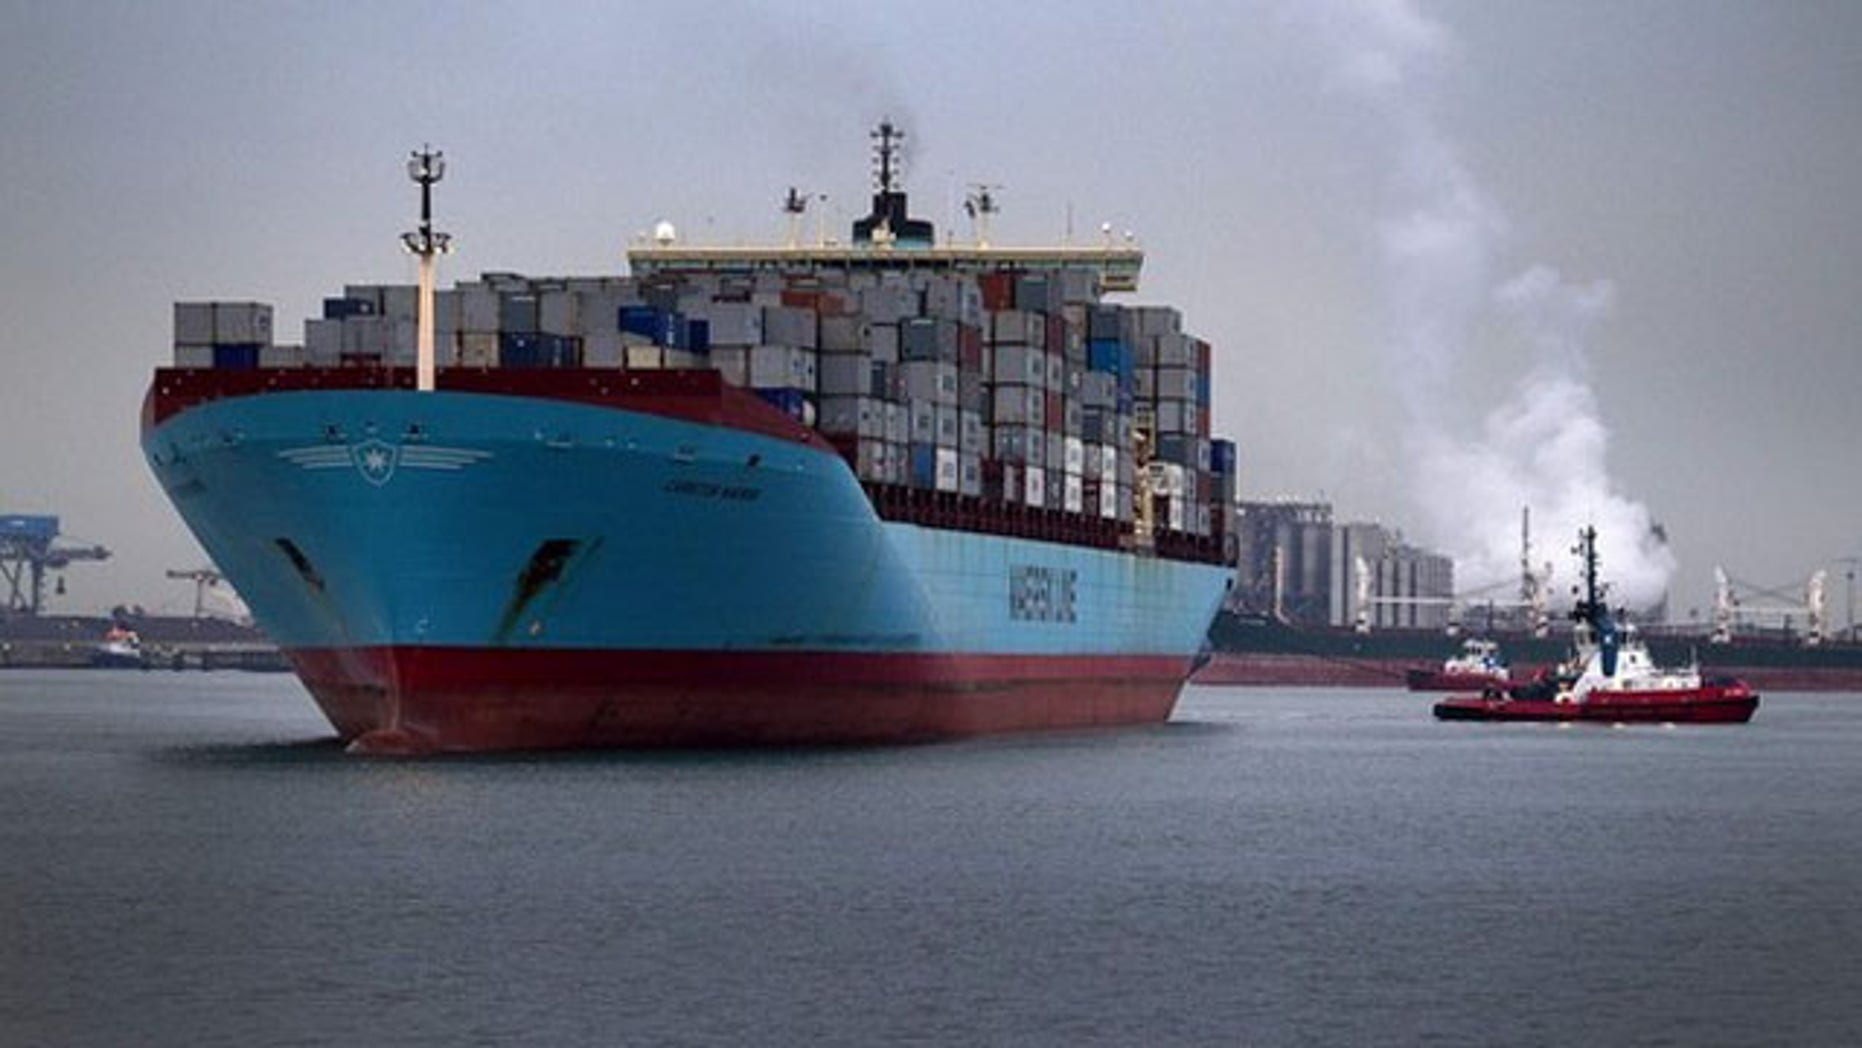 The Carsten Maersk enters Europe's largest port, Rotterdam, April 14.